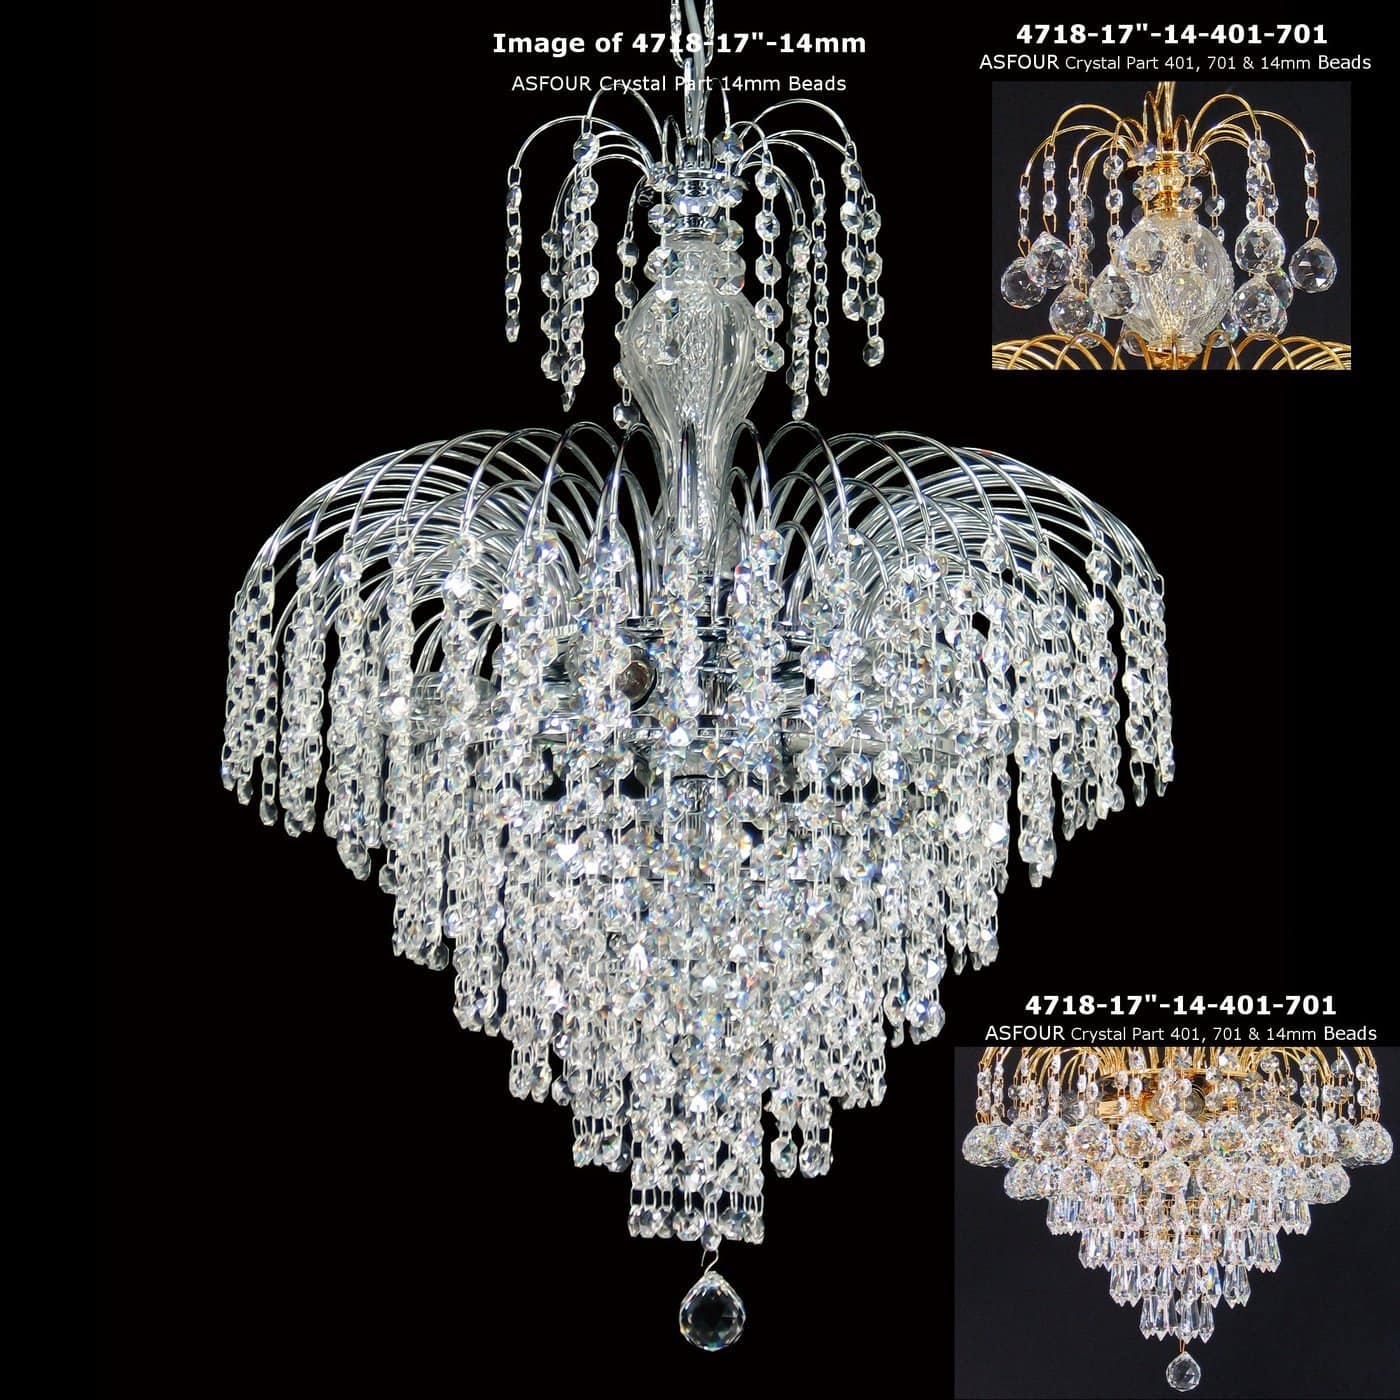 7 Light 17 Asfour Lead Crystal 24ct Gold Plated Waterfall Chandelier W Prisma